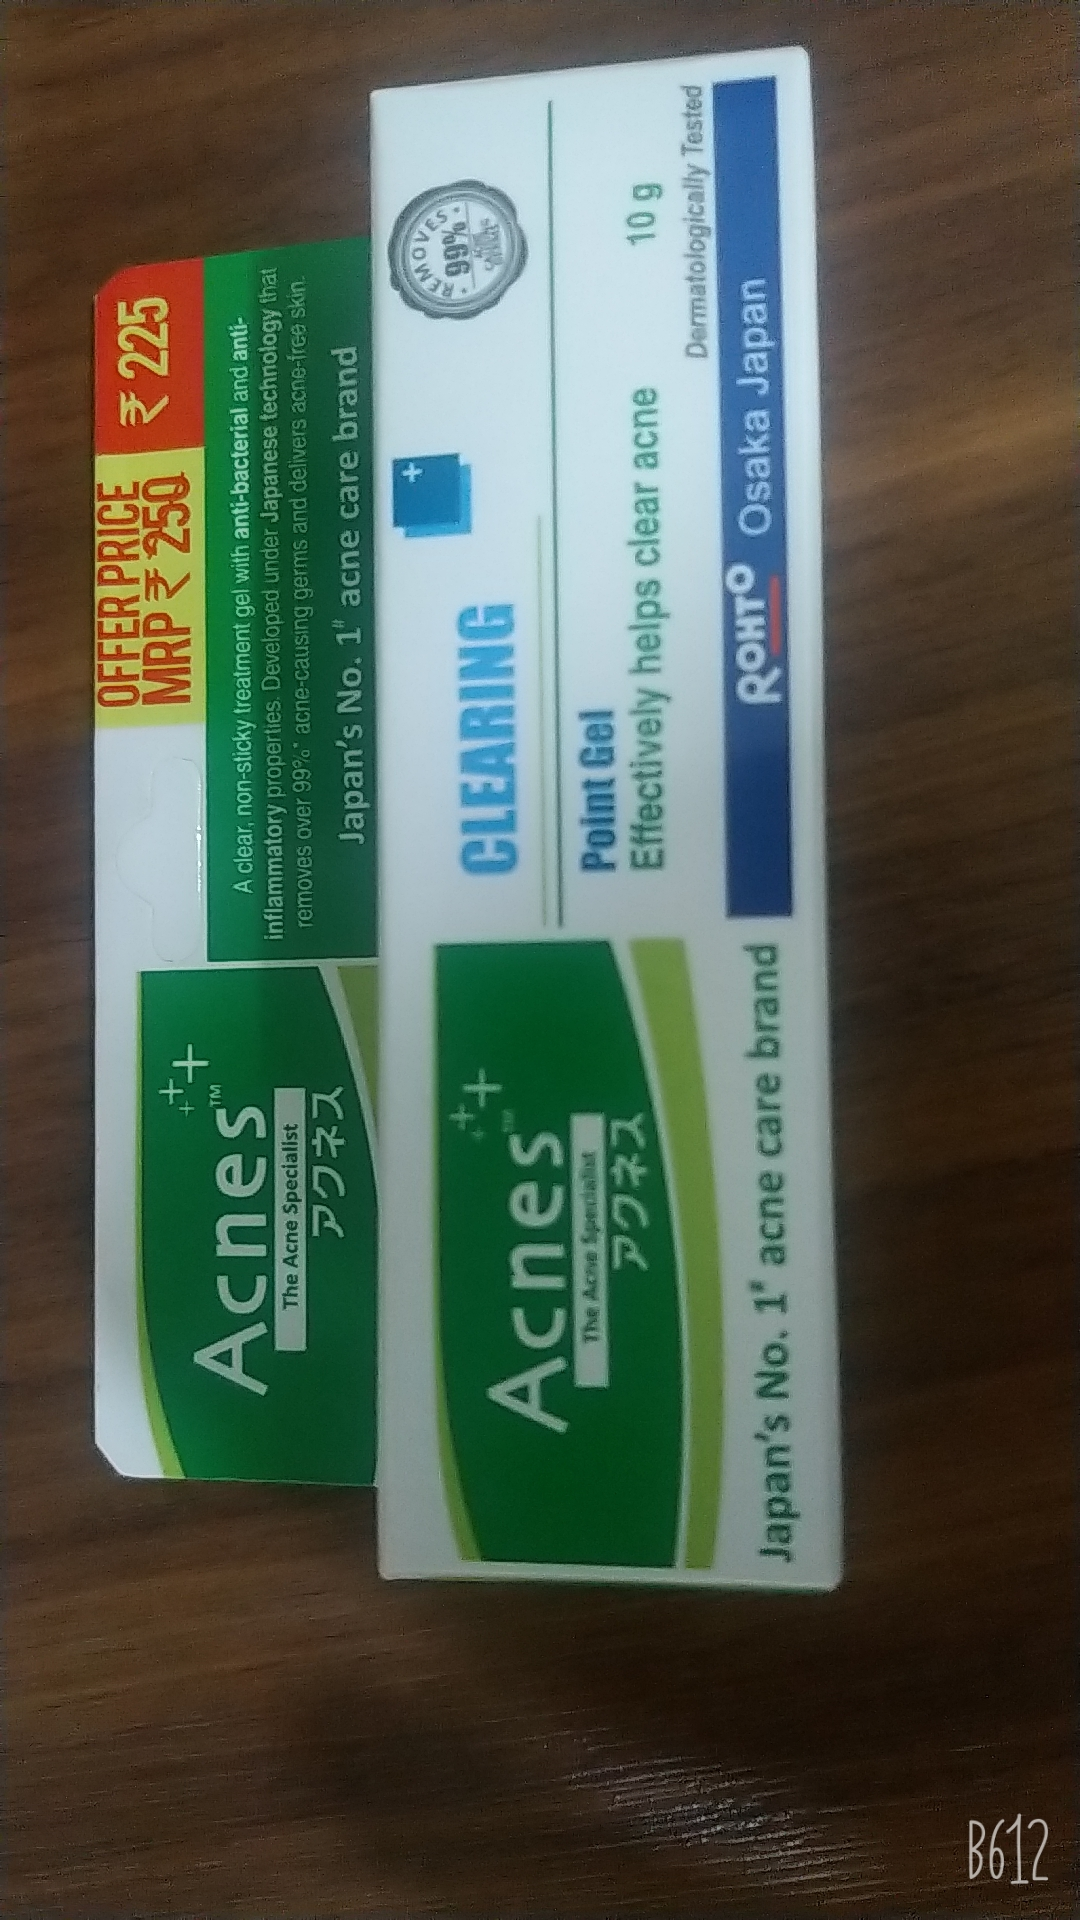 Acnes Clearing Point Anti-Pimple Gel-My Daily Essential-By trunwal-2